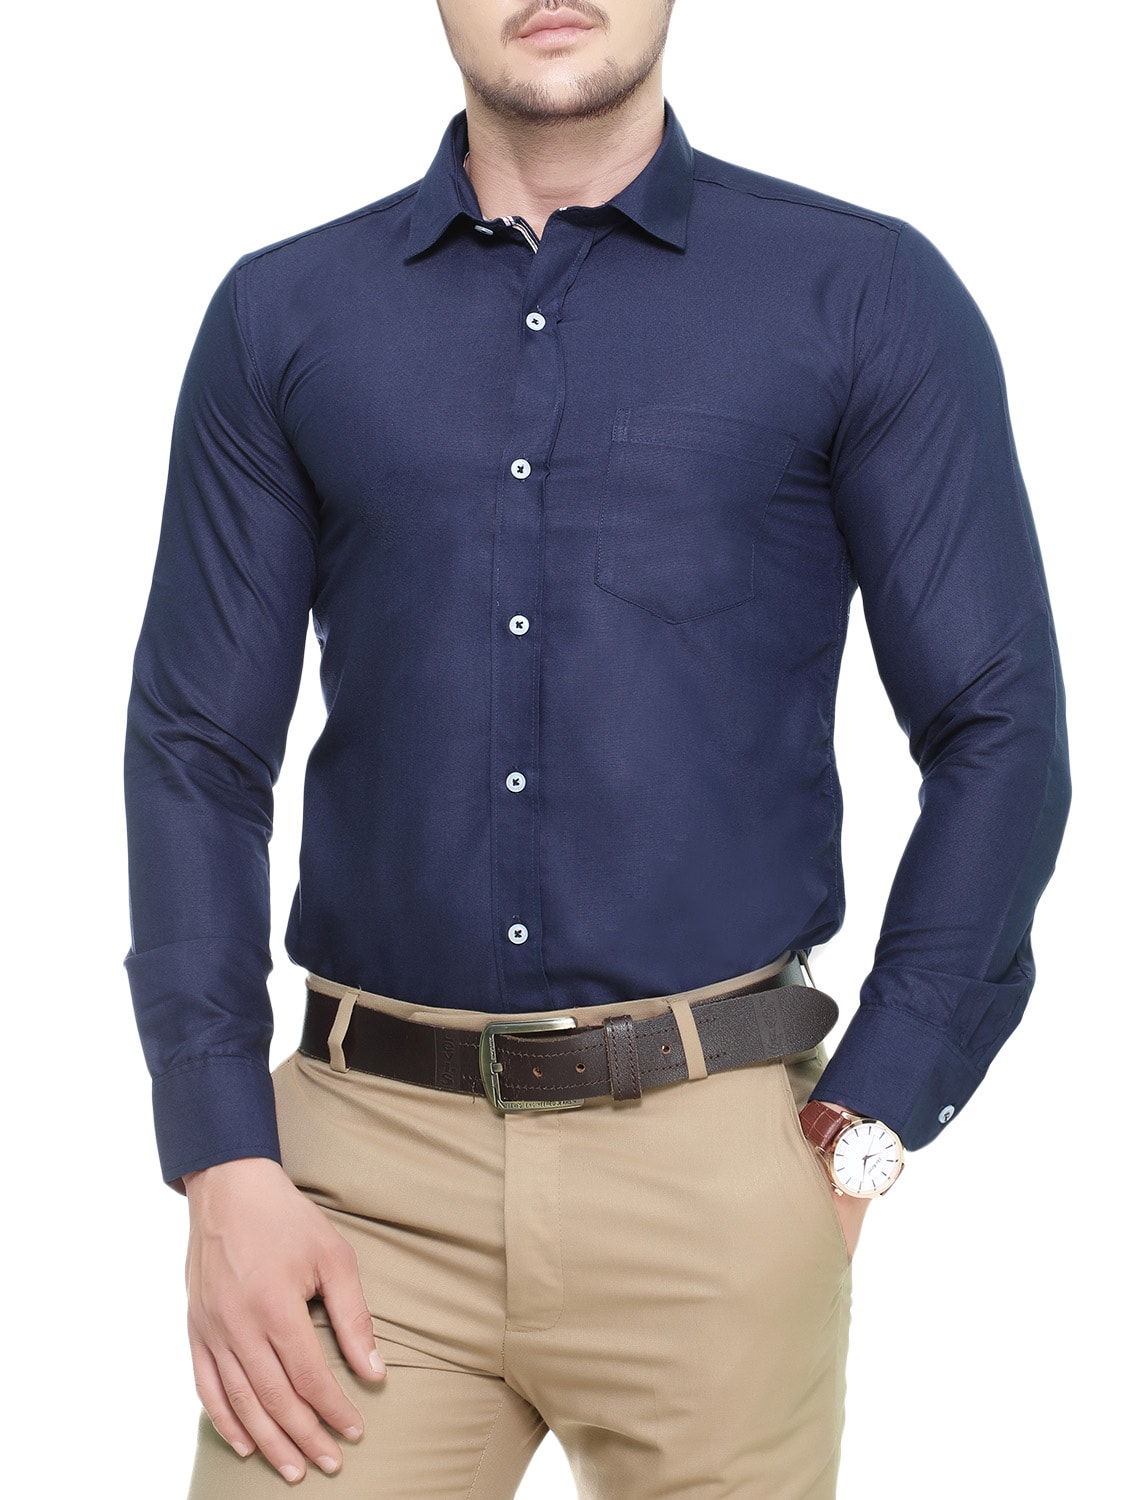 0f9712d60 ... navy blue cotton casual shirt - 13920761 - Zoom Image - 1